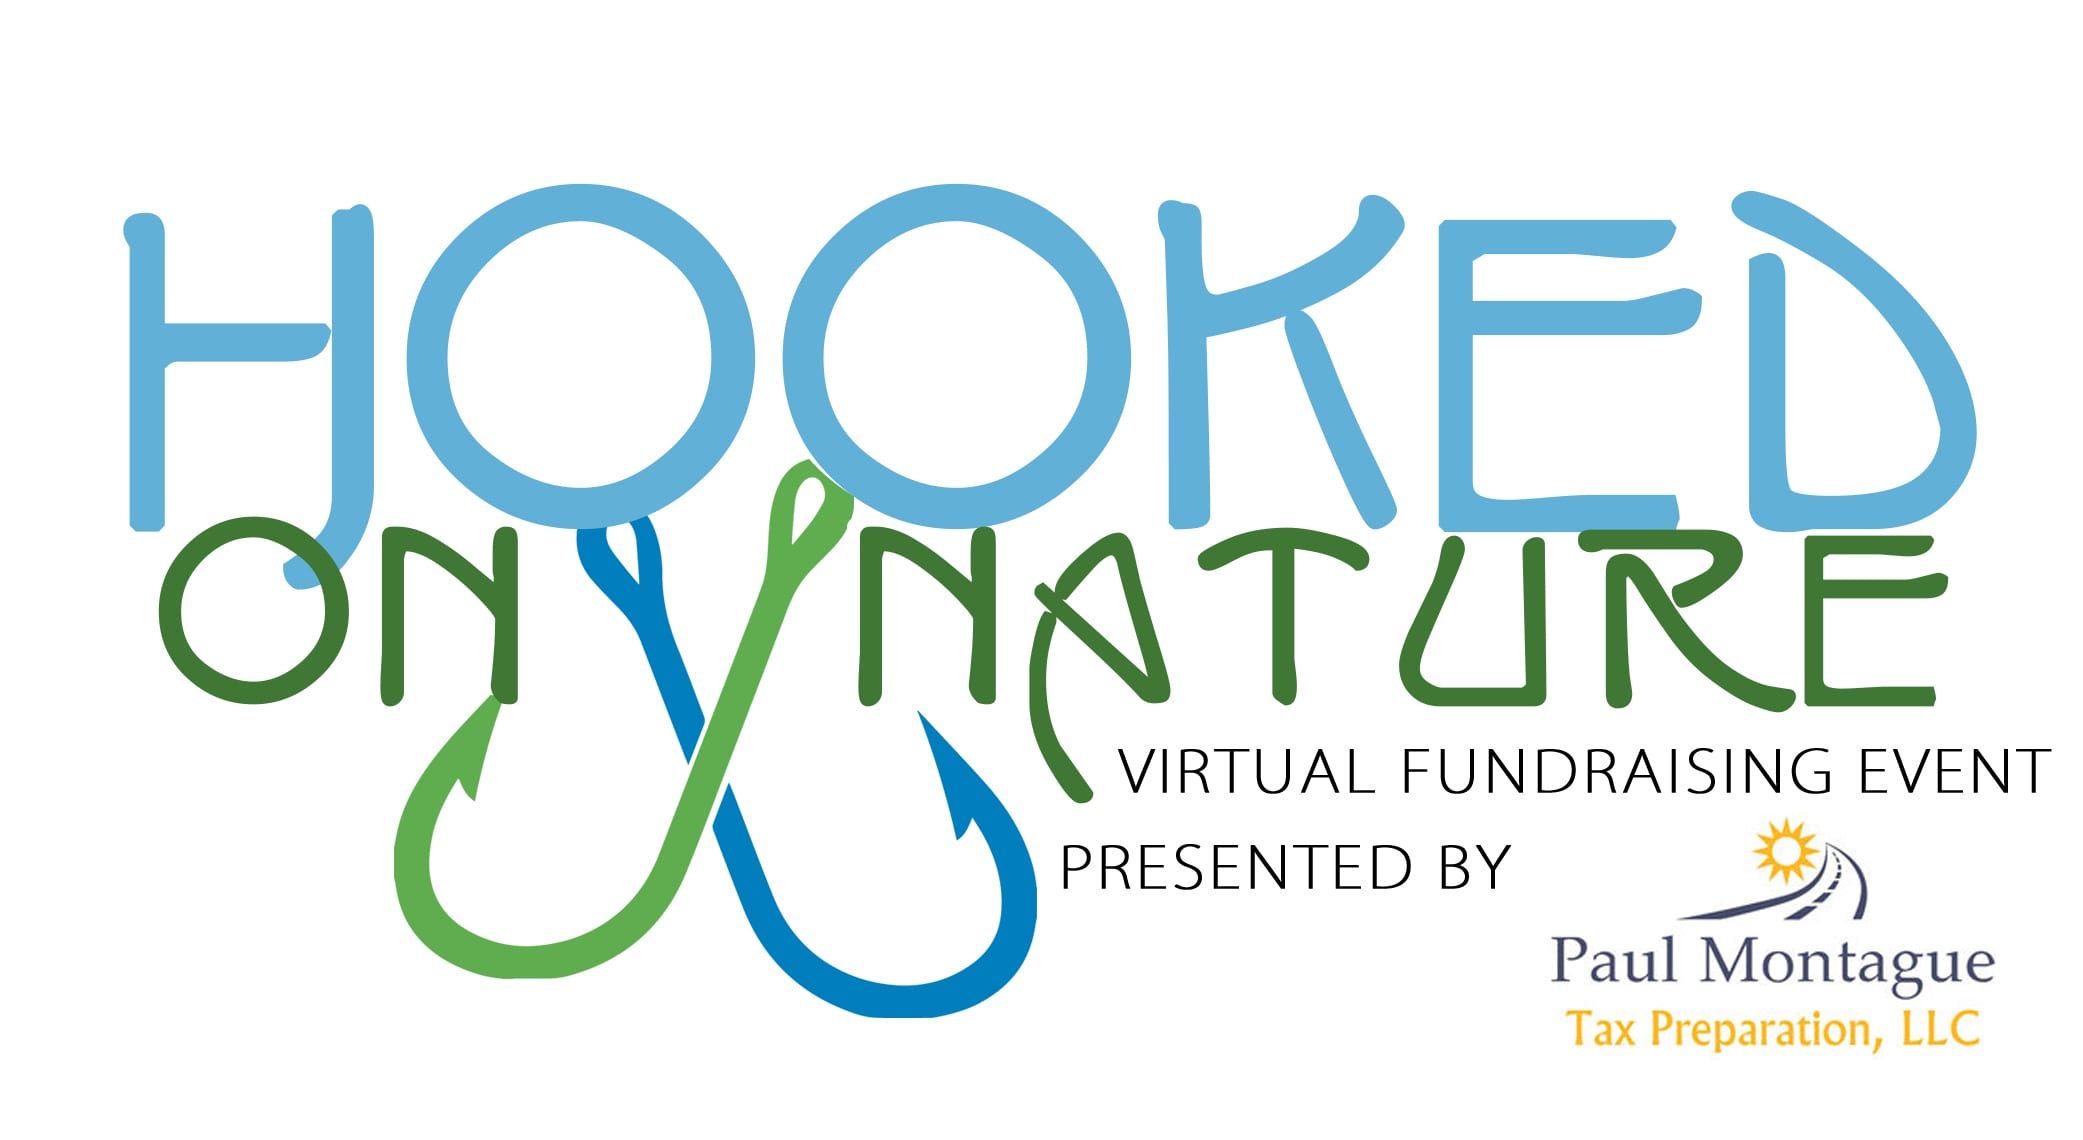 Hooked on Nature presented by Paul Montague Tax Preparation